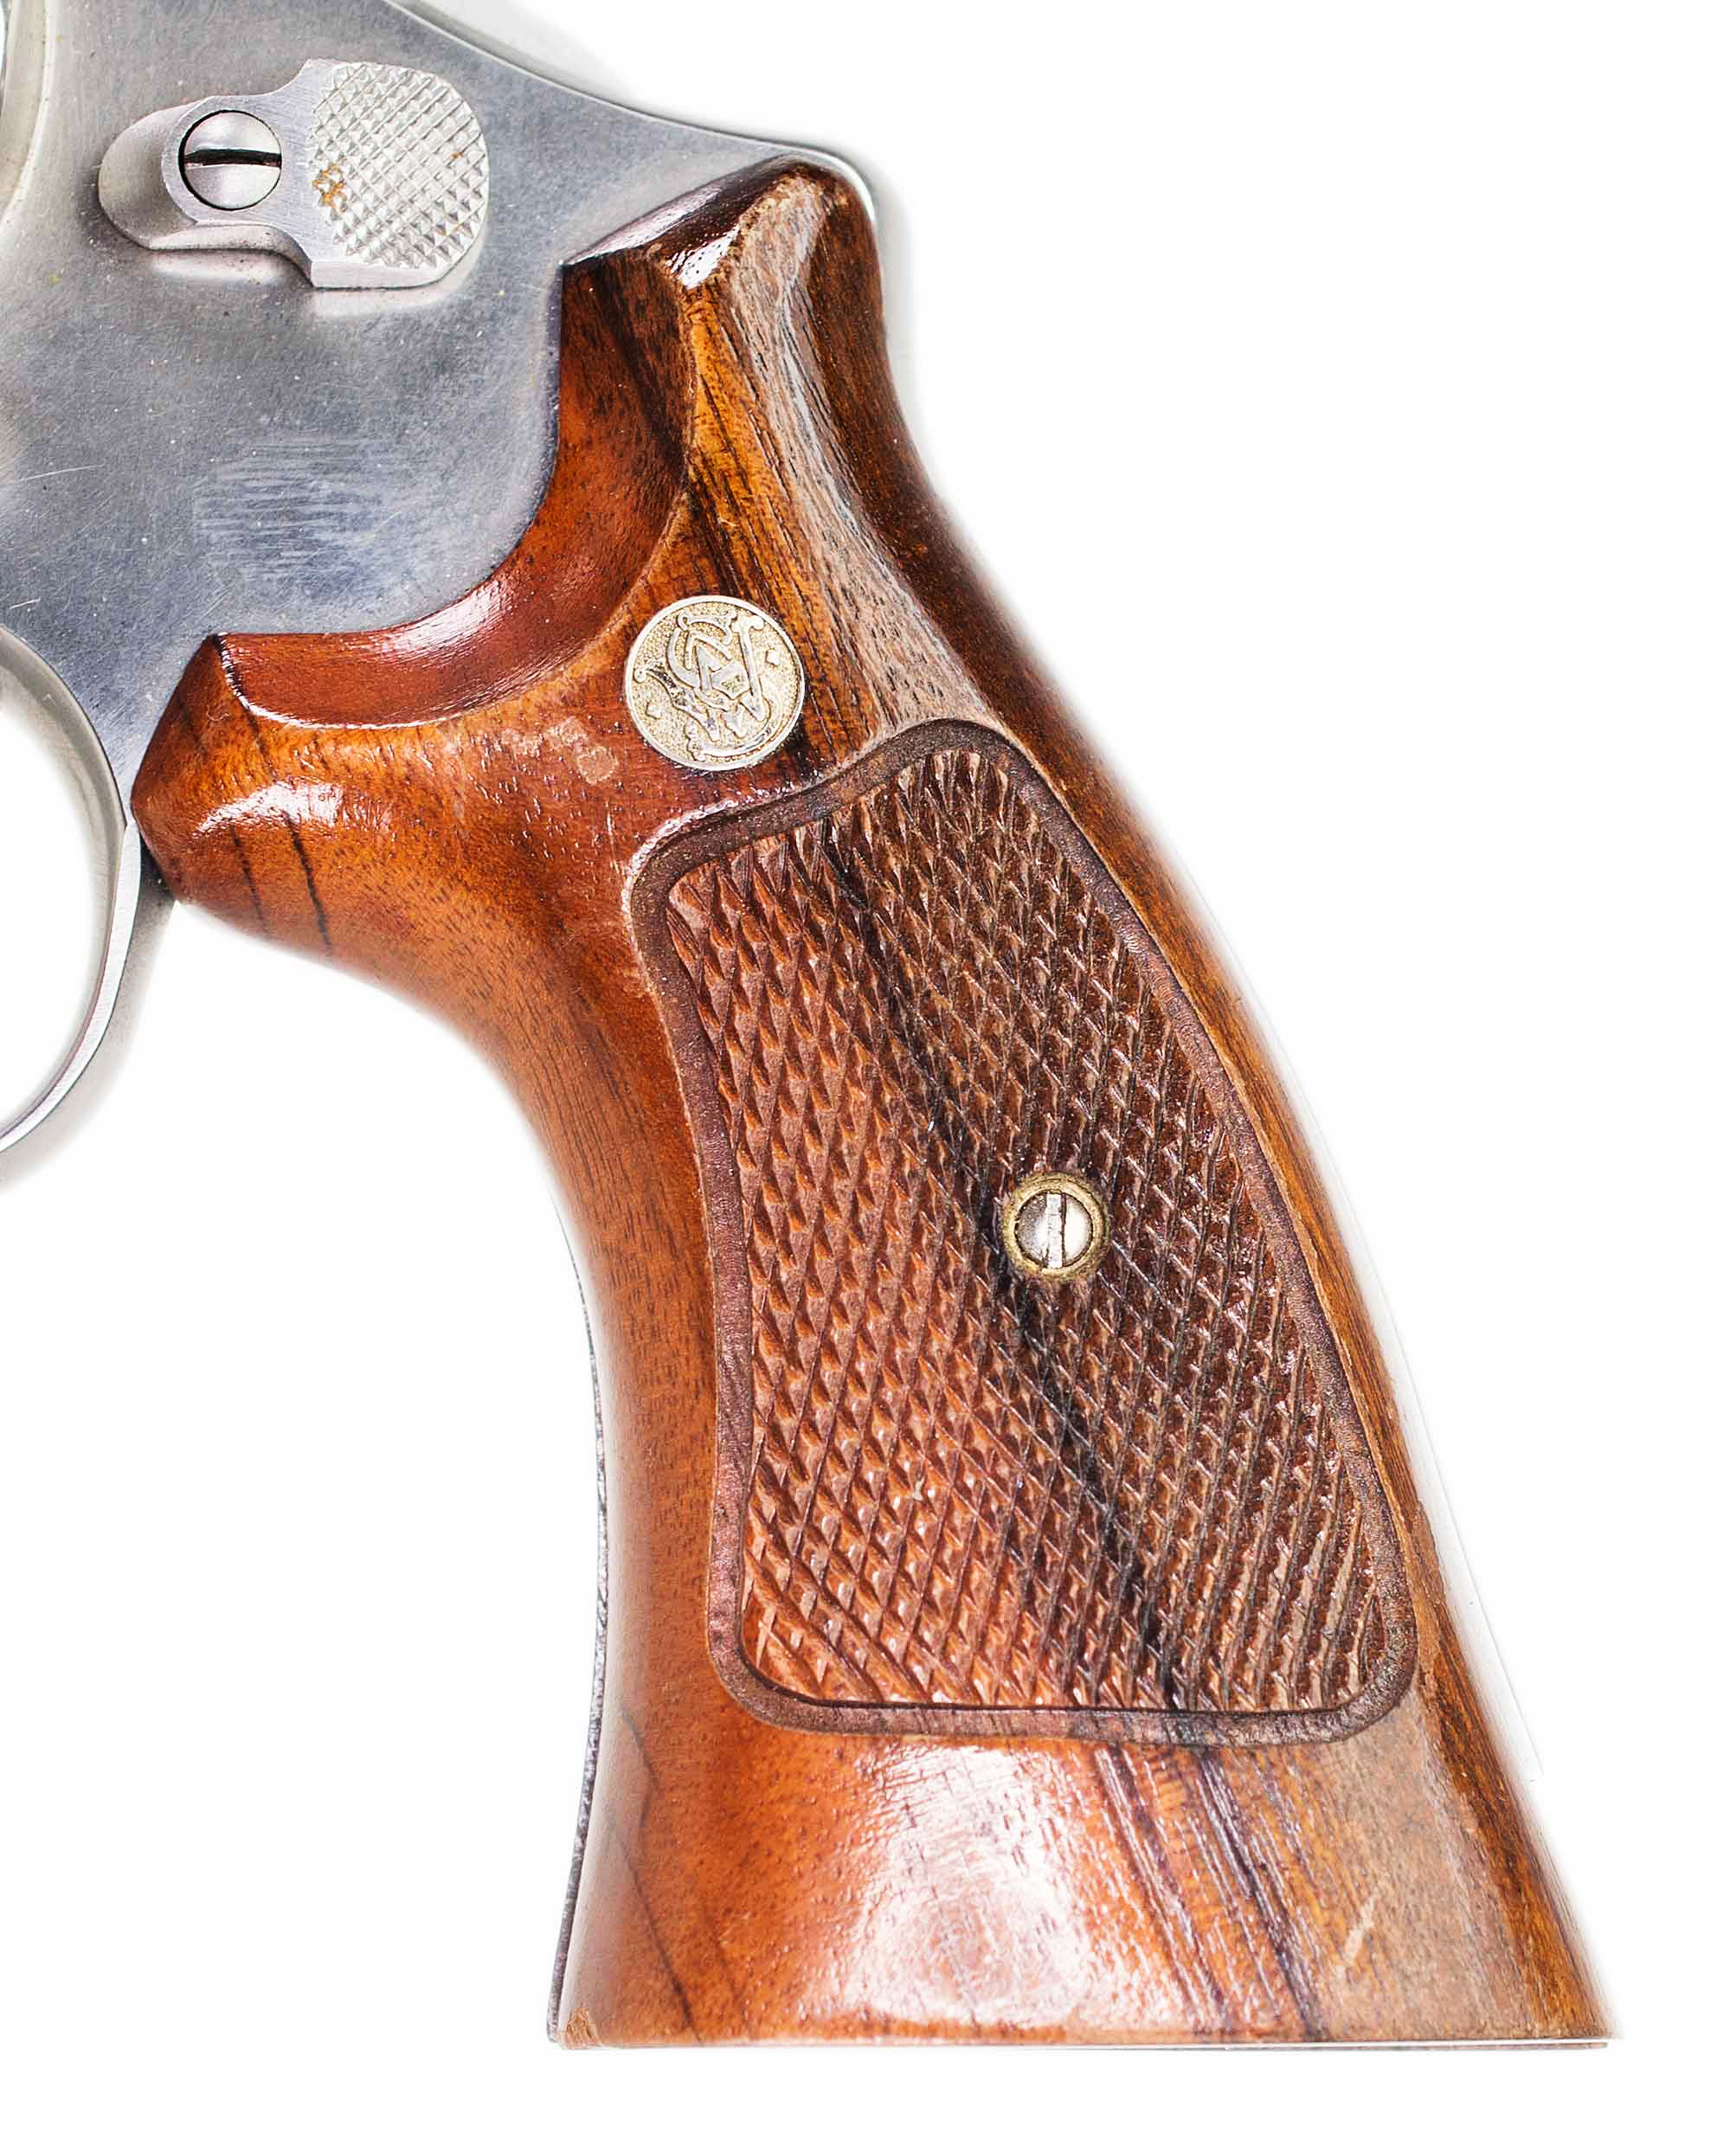 SMITH & WESSON MODEL 629 (Auction ID: 8231464, End Time : May  17